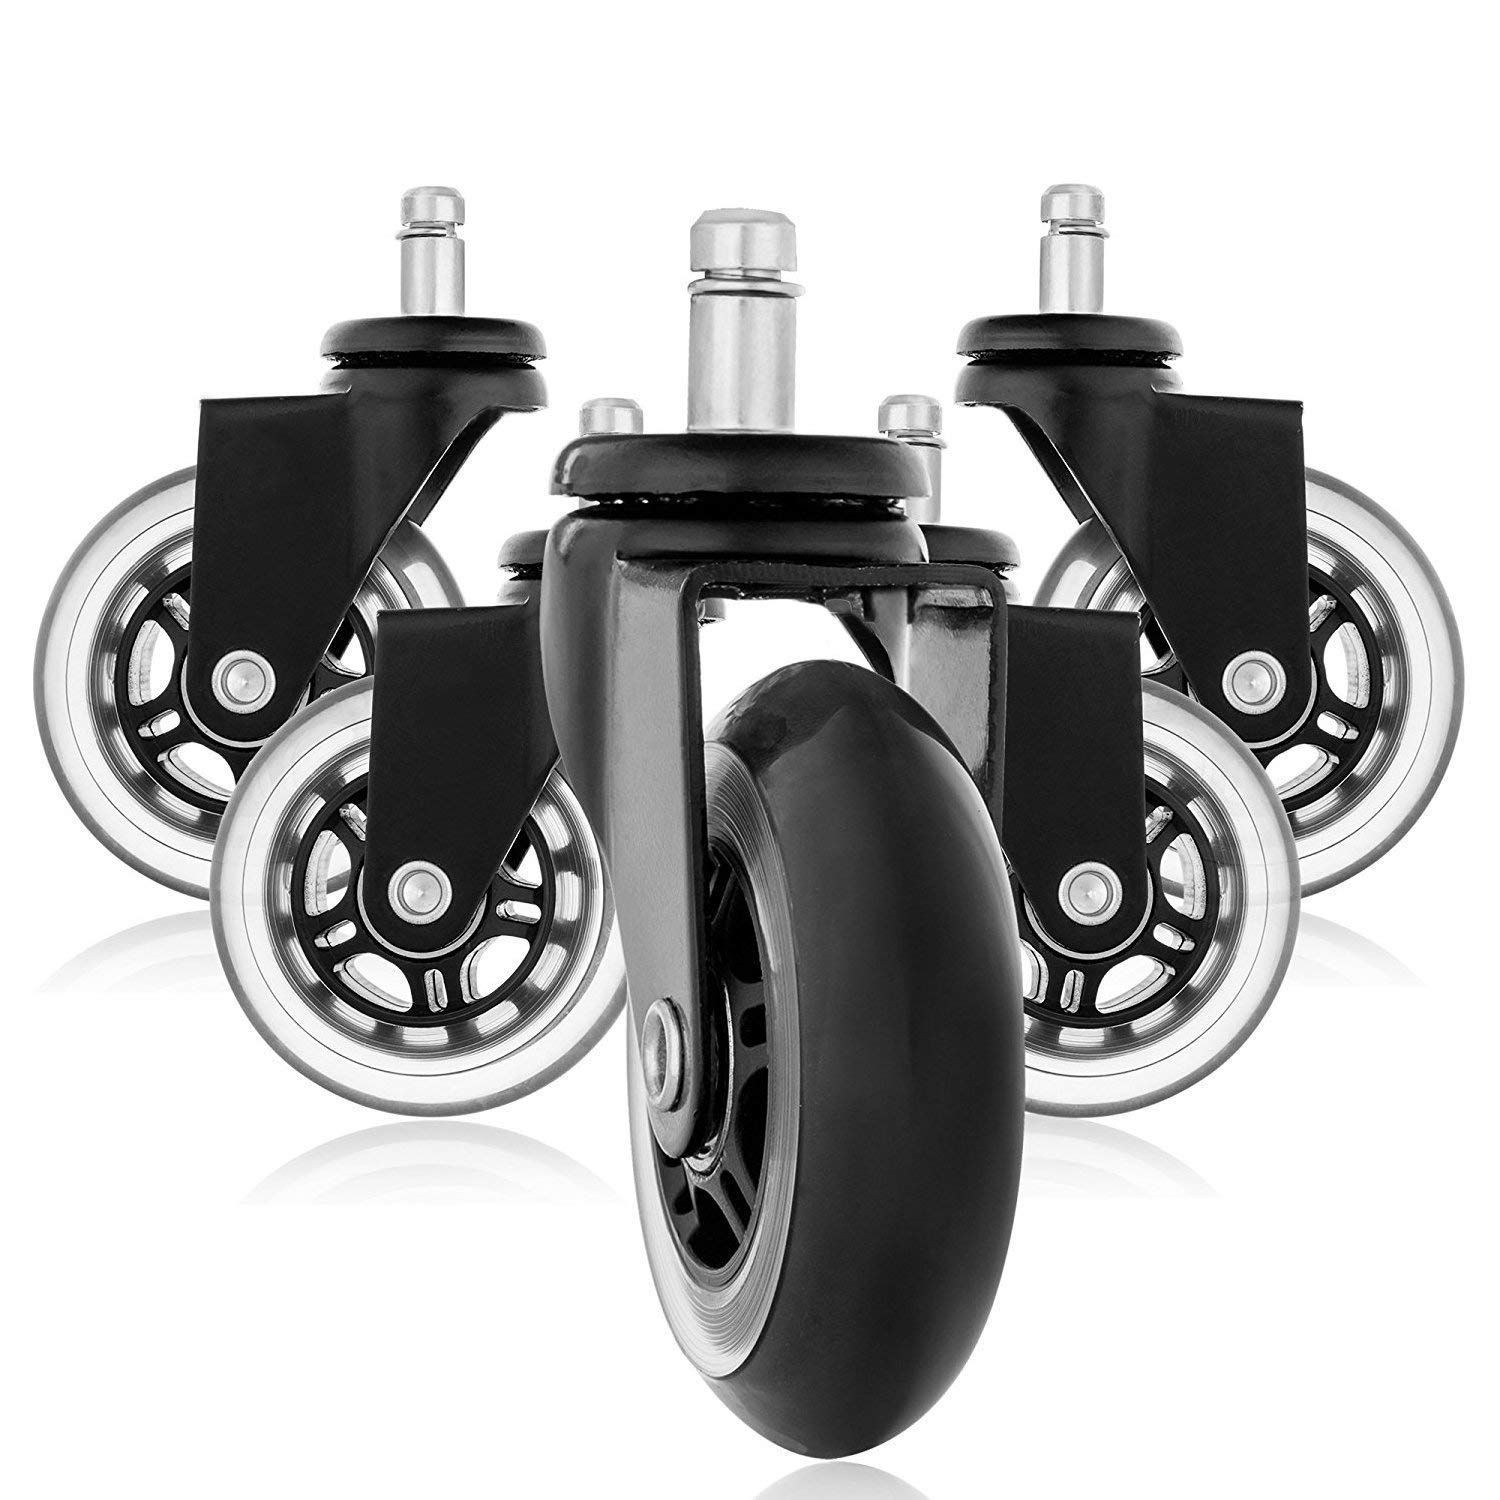 Furniture Caster Replacement Wheels Office Chair Caster Wheels for Your Desk Chair Quiet Rolling Casters Wheel Diameter2.9